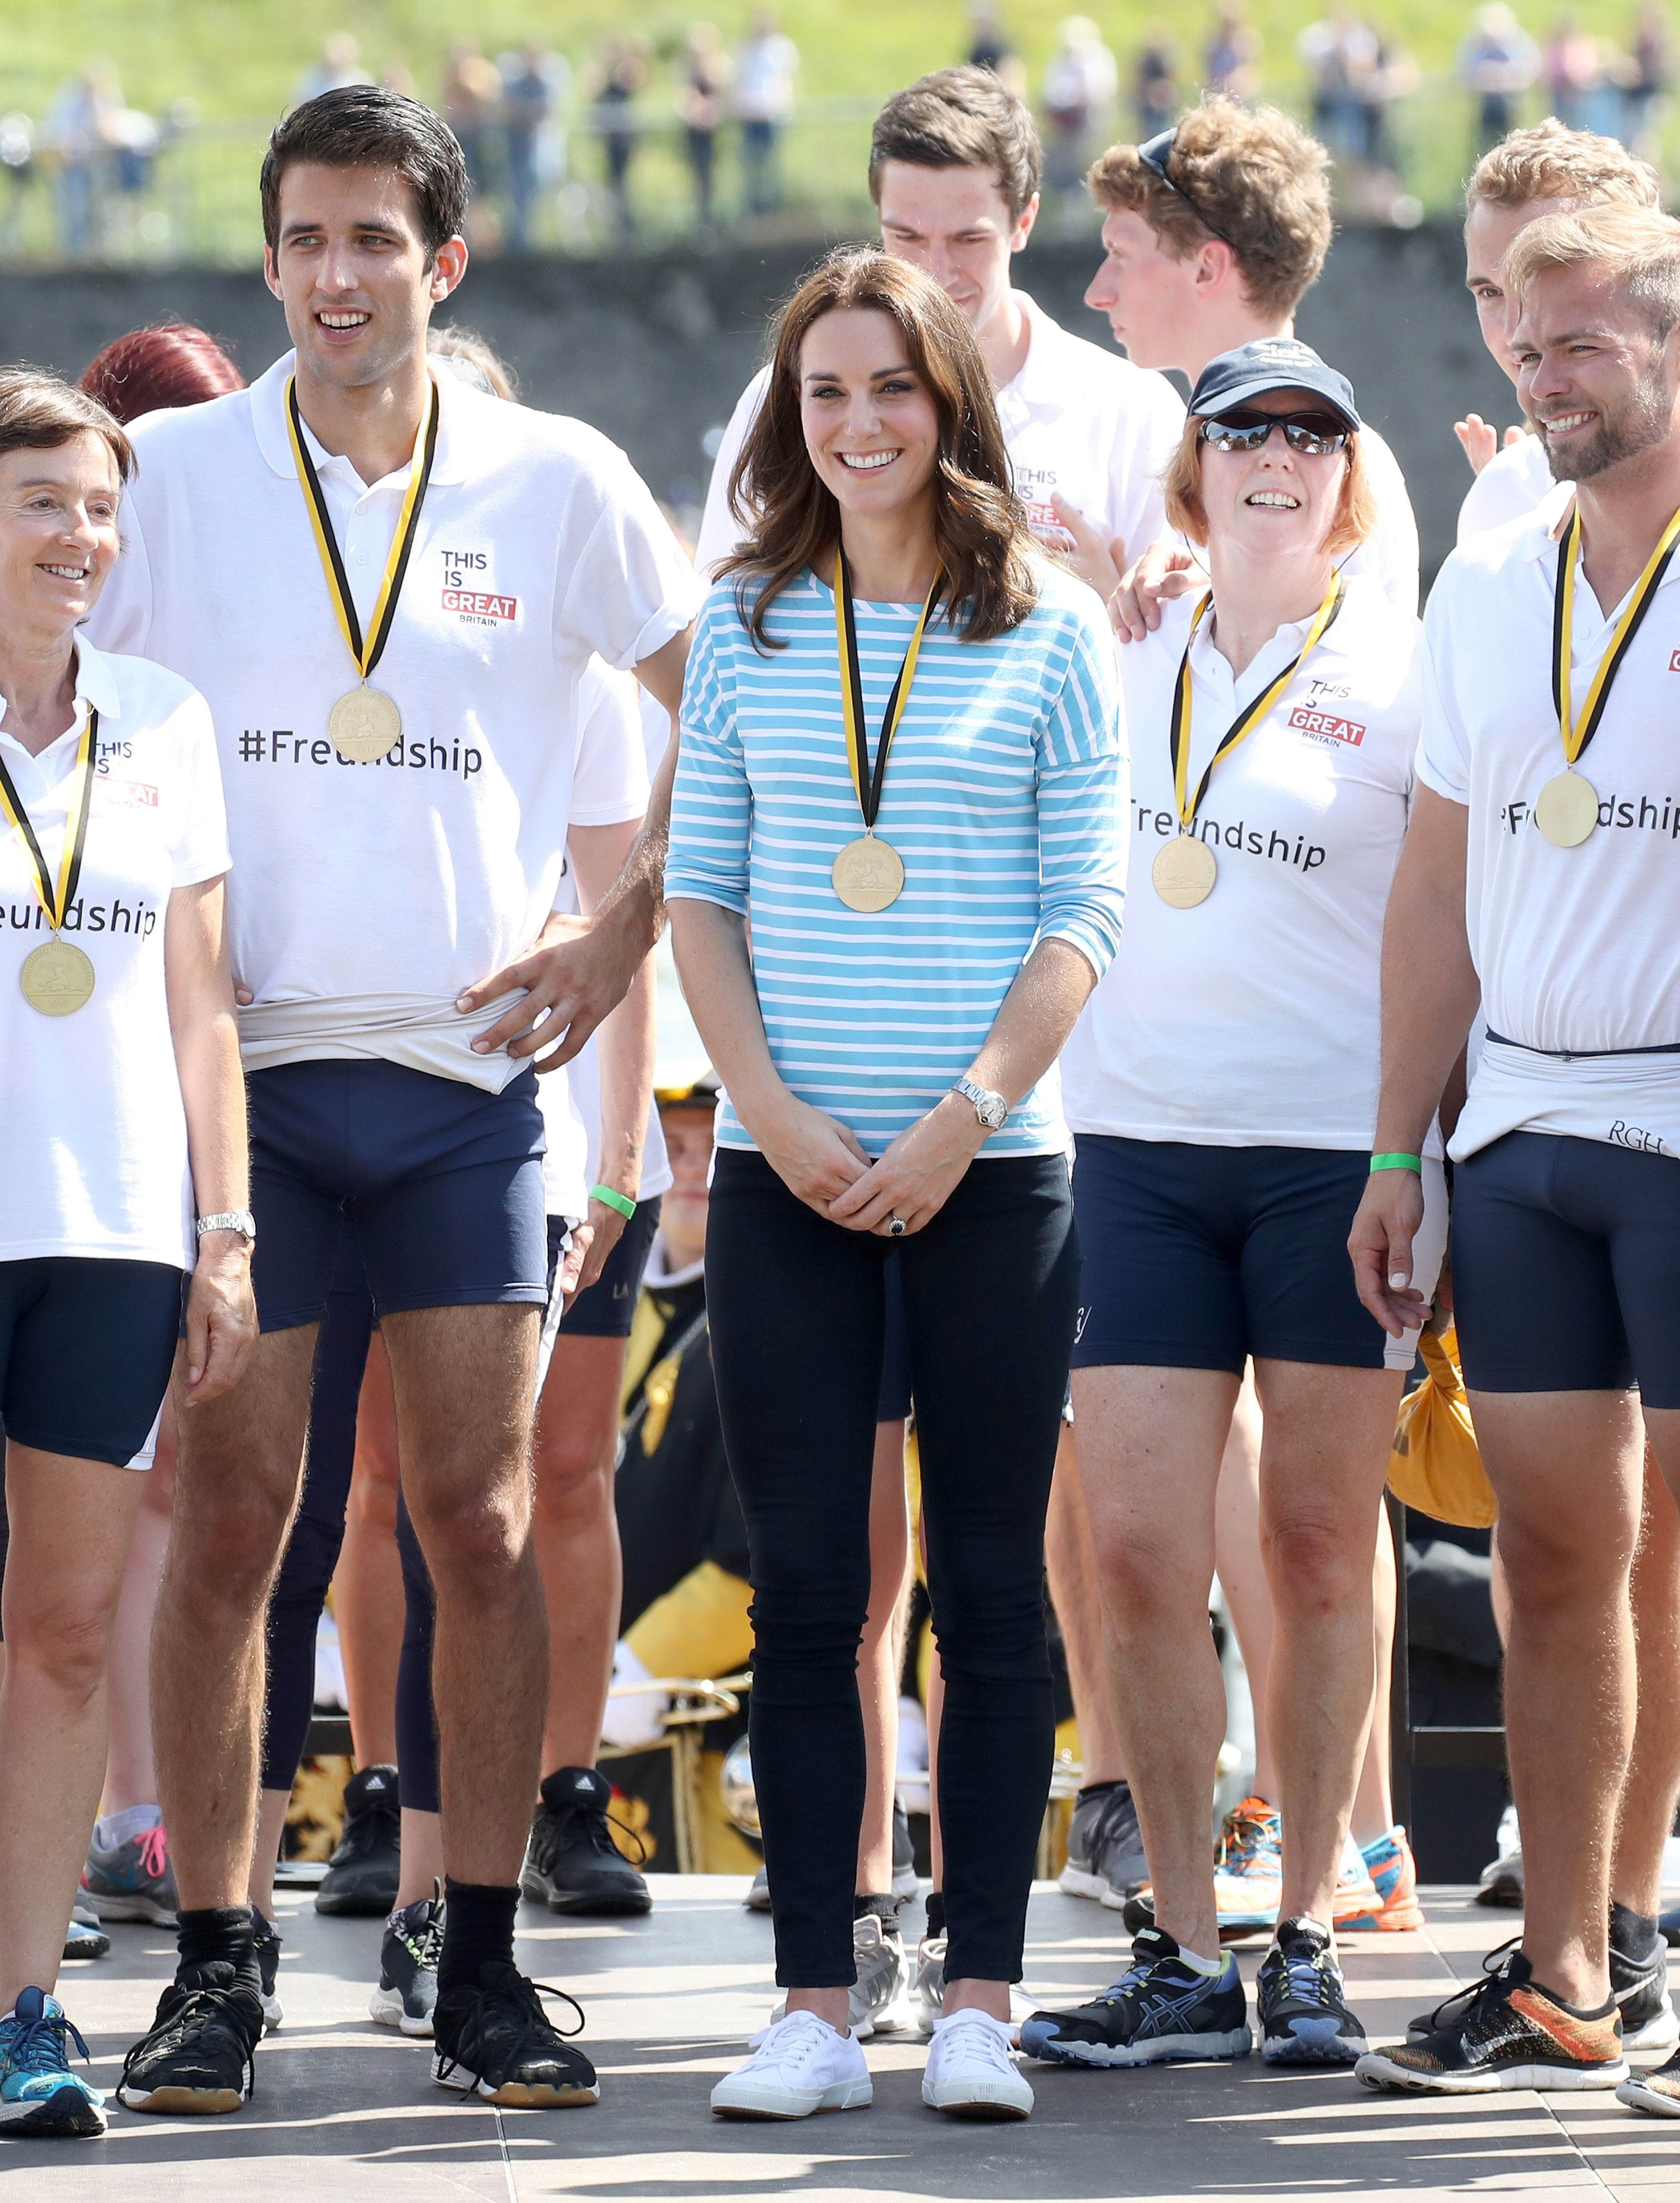 Catherine, Duchess of Cambridge standing with teammates after participating in a rowing race between the twinned town of Cambridge and Heidelberg during an official visit to Poland and Germany on July 20, 2017 in Heidelberg, Germany.